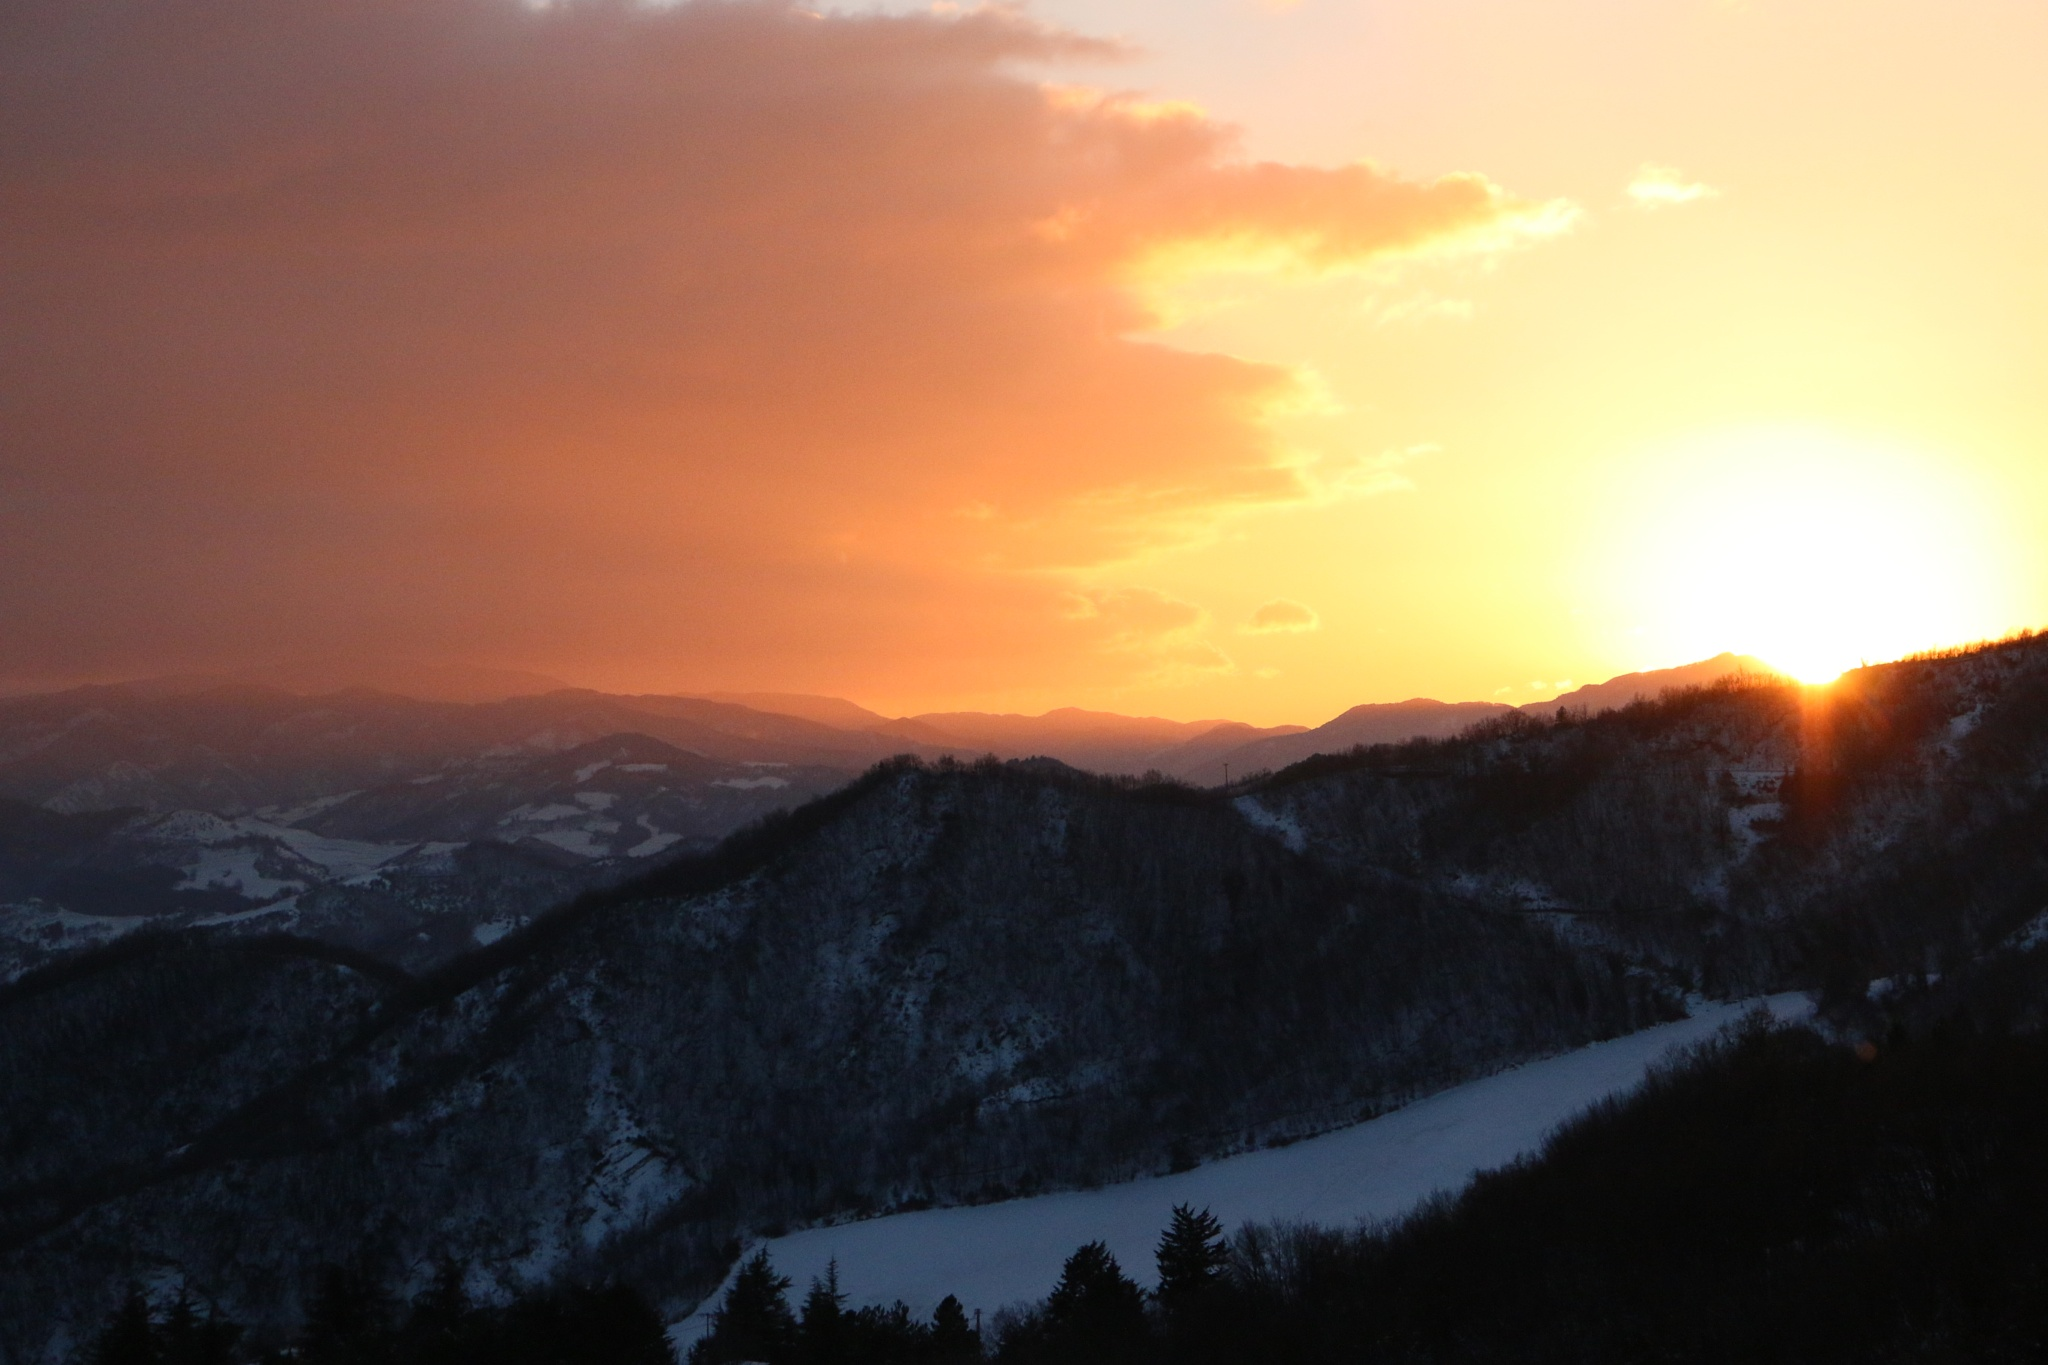 Sunset in the snow by giuseppe molinari